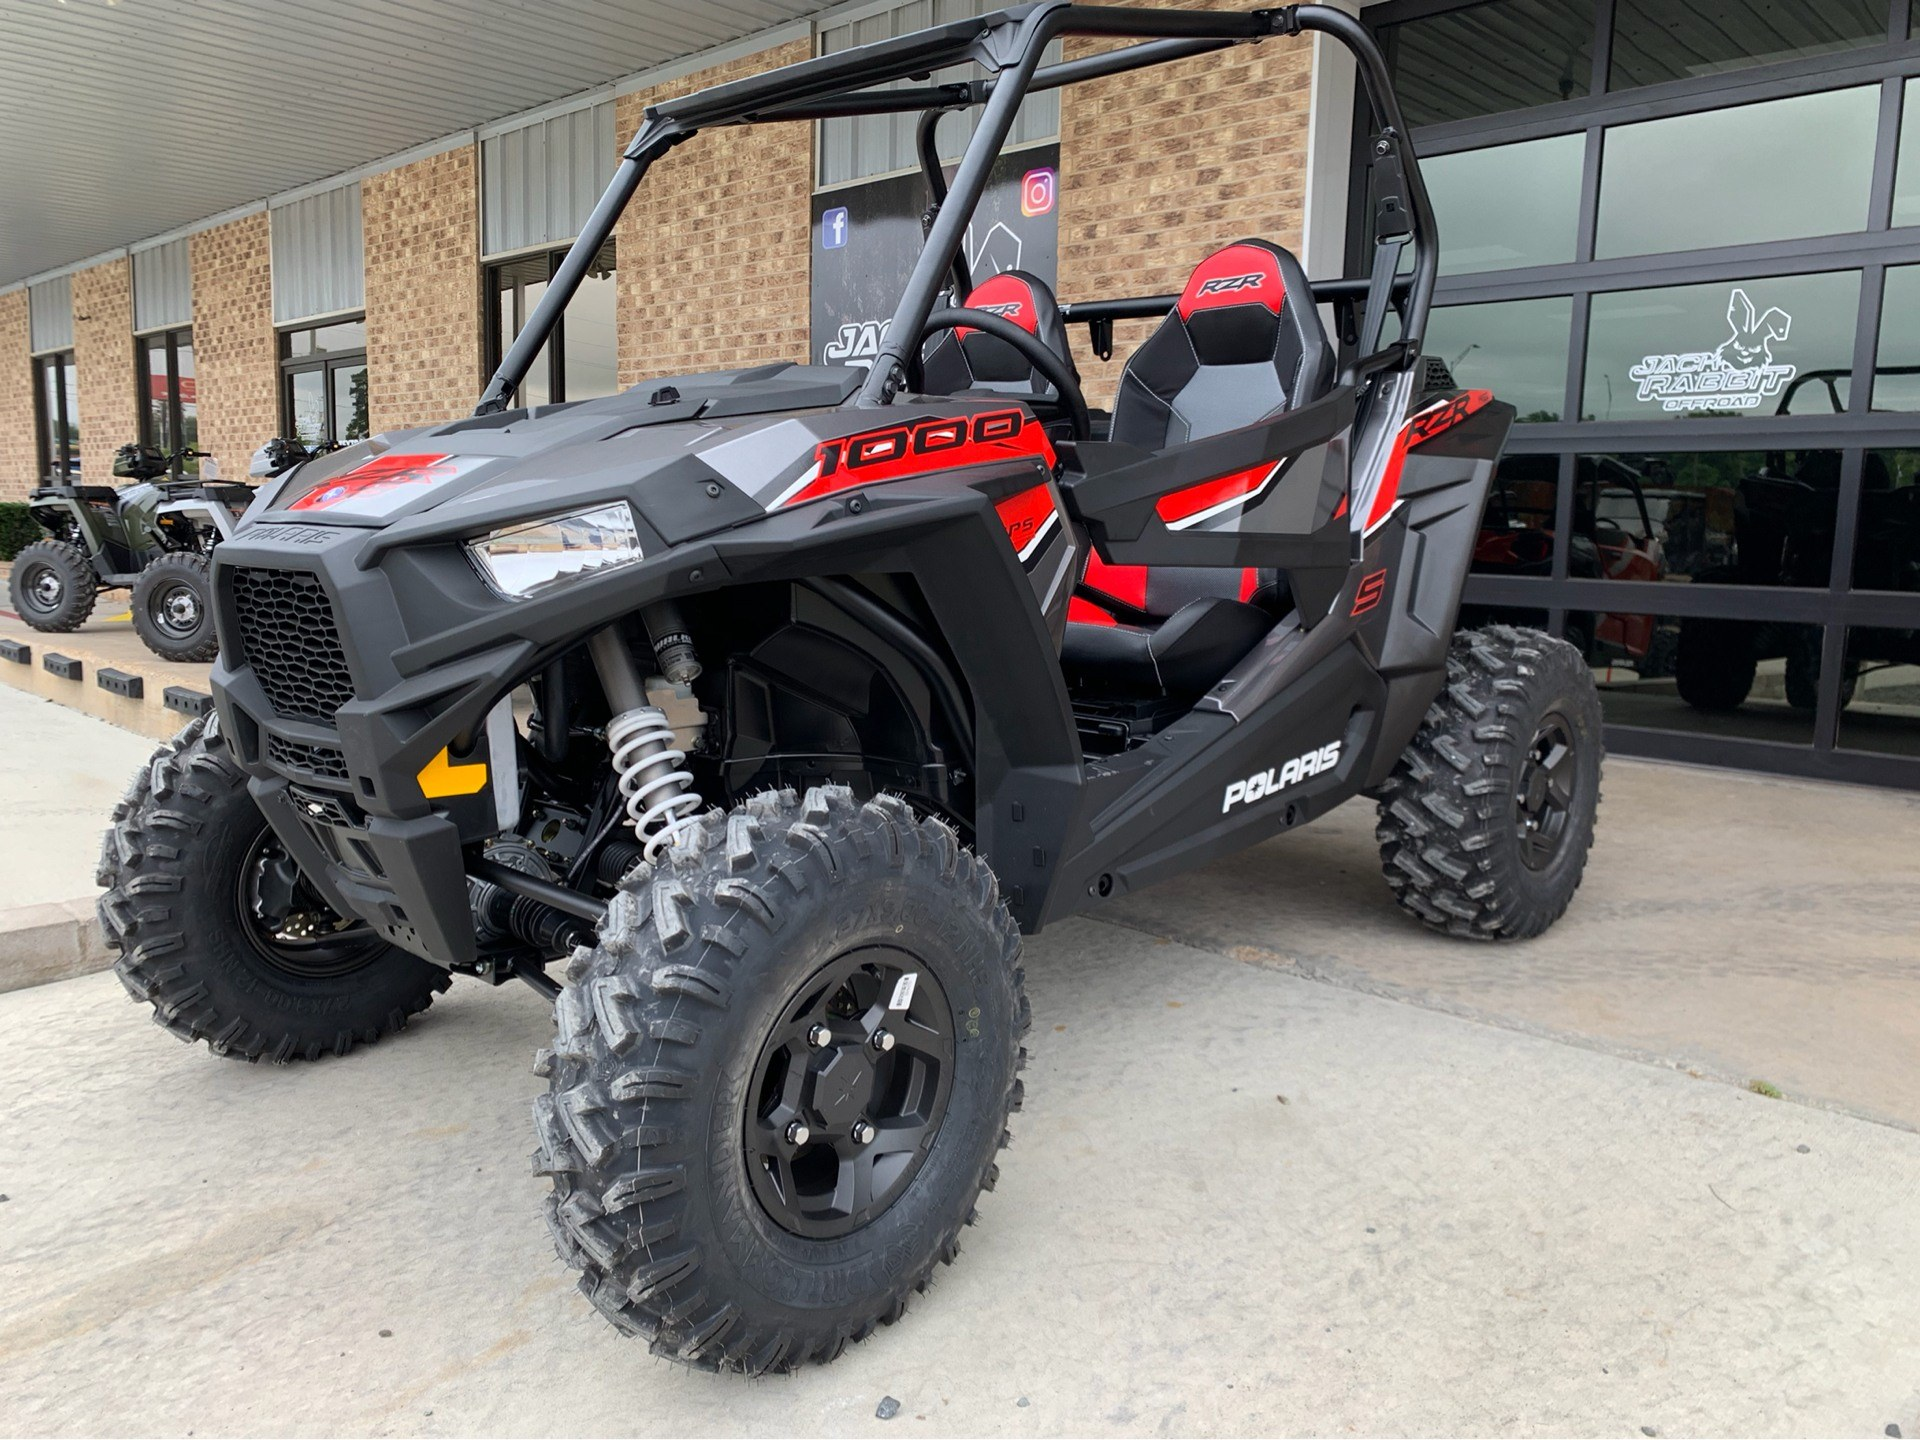 2019 Polaris RZR S 1000 EPS in Marshall, Texas - Photo 1